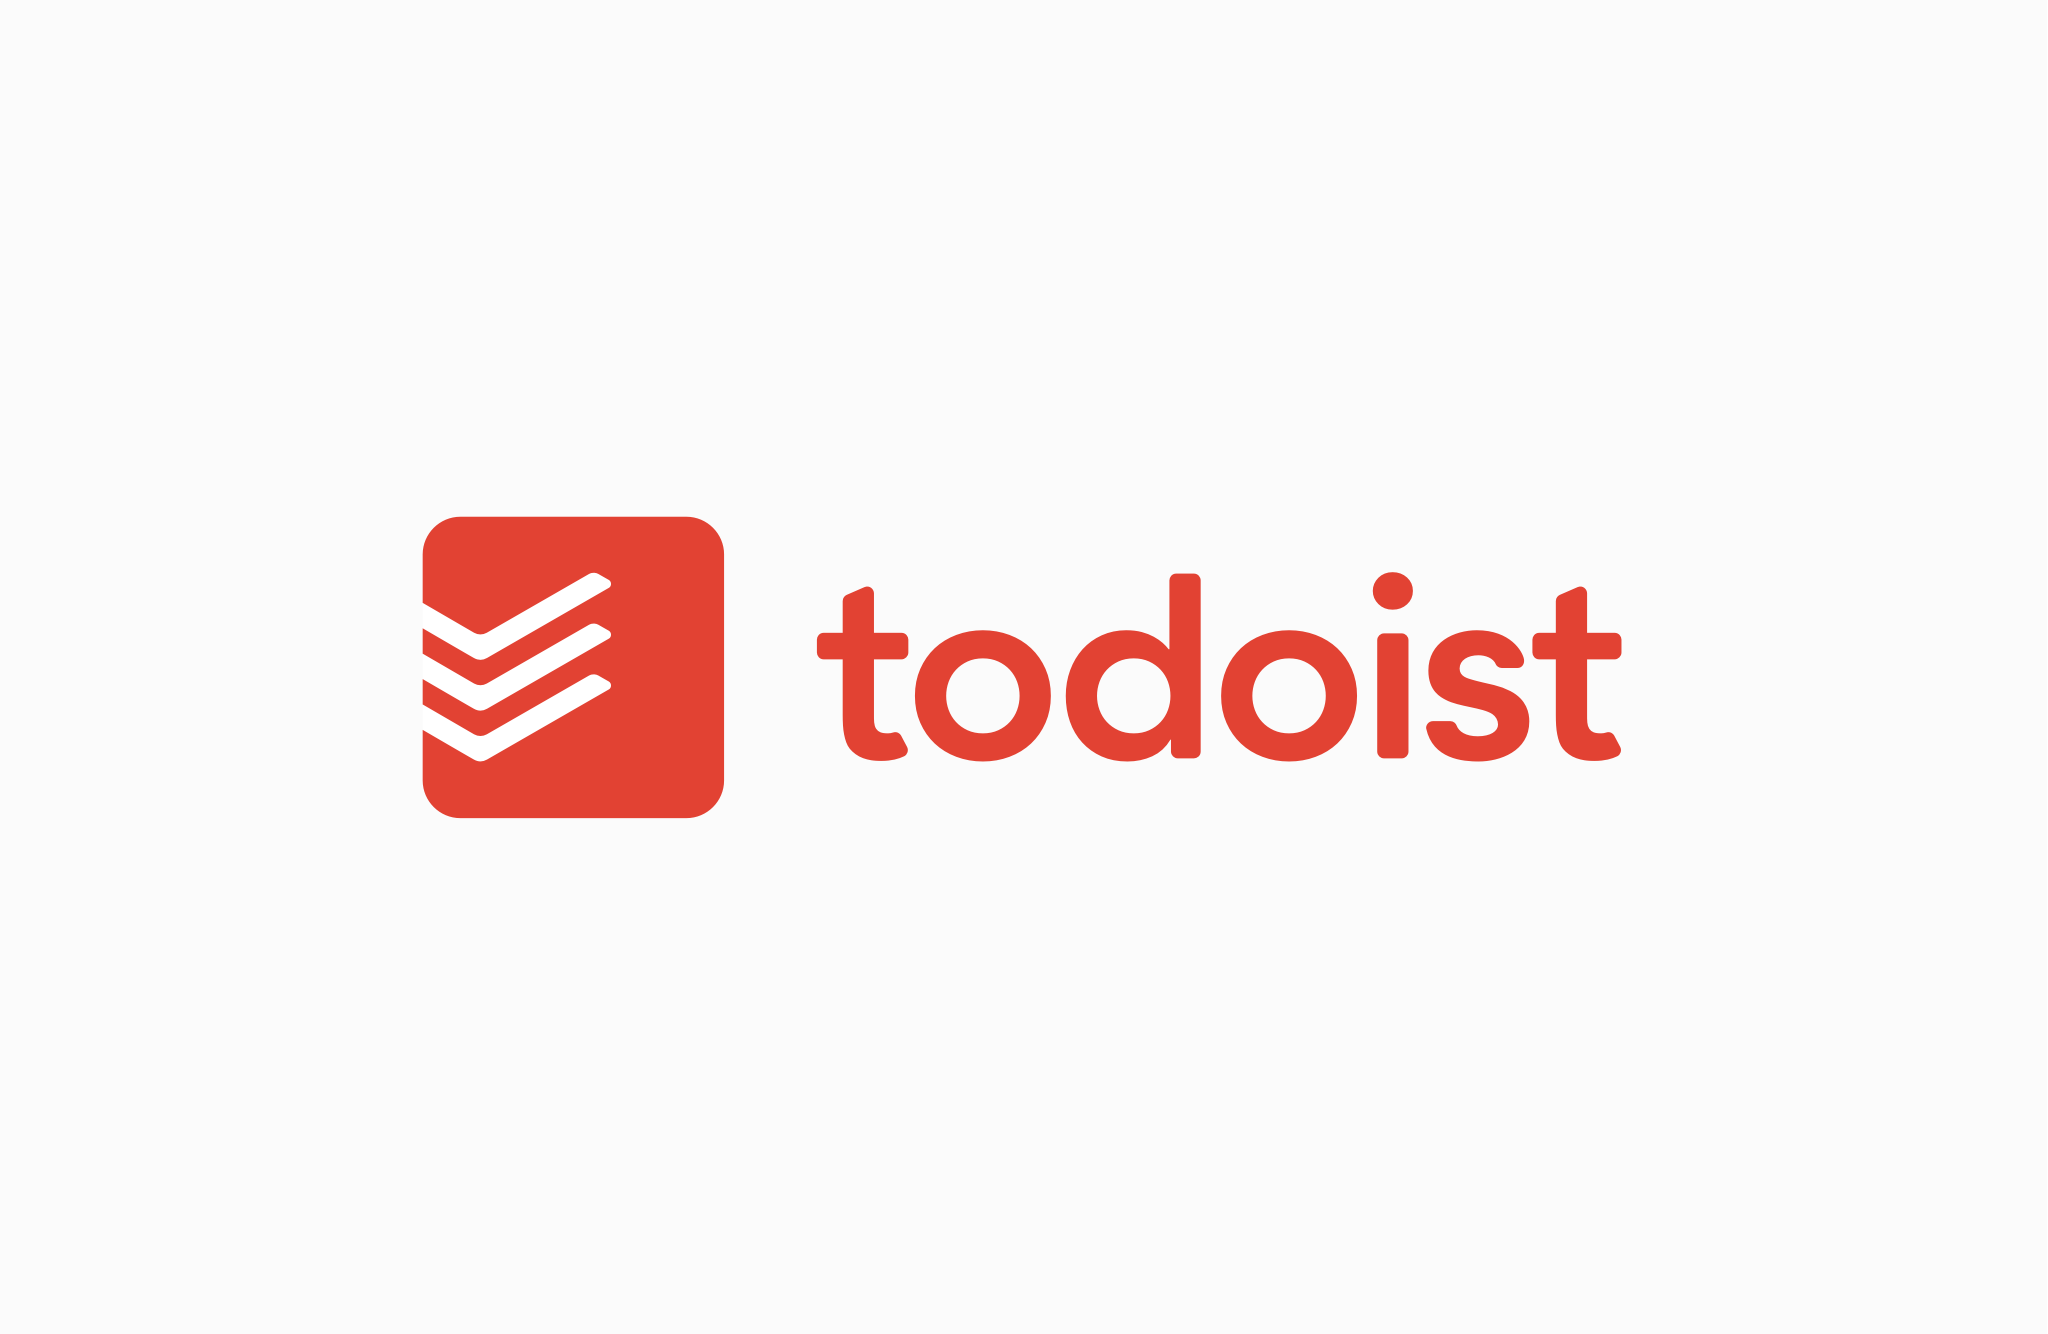 TODOIST SUBSCRIBERS DONOT GO PRIME